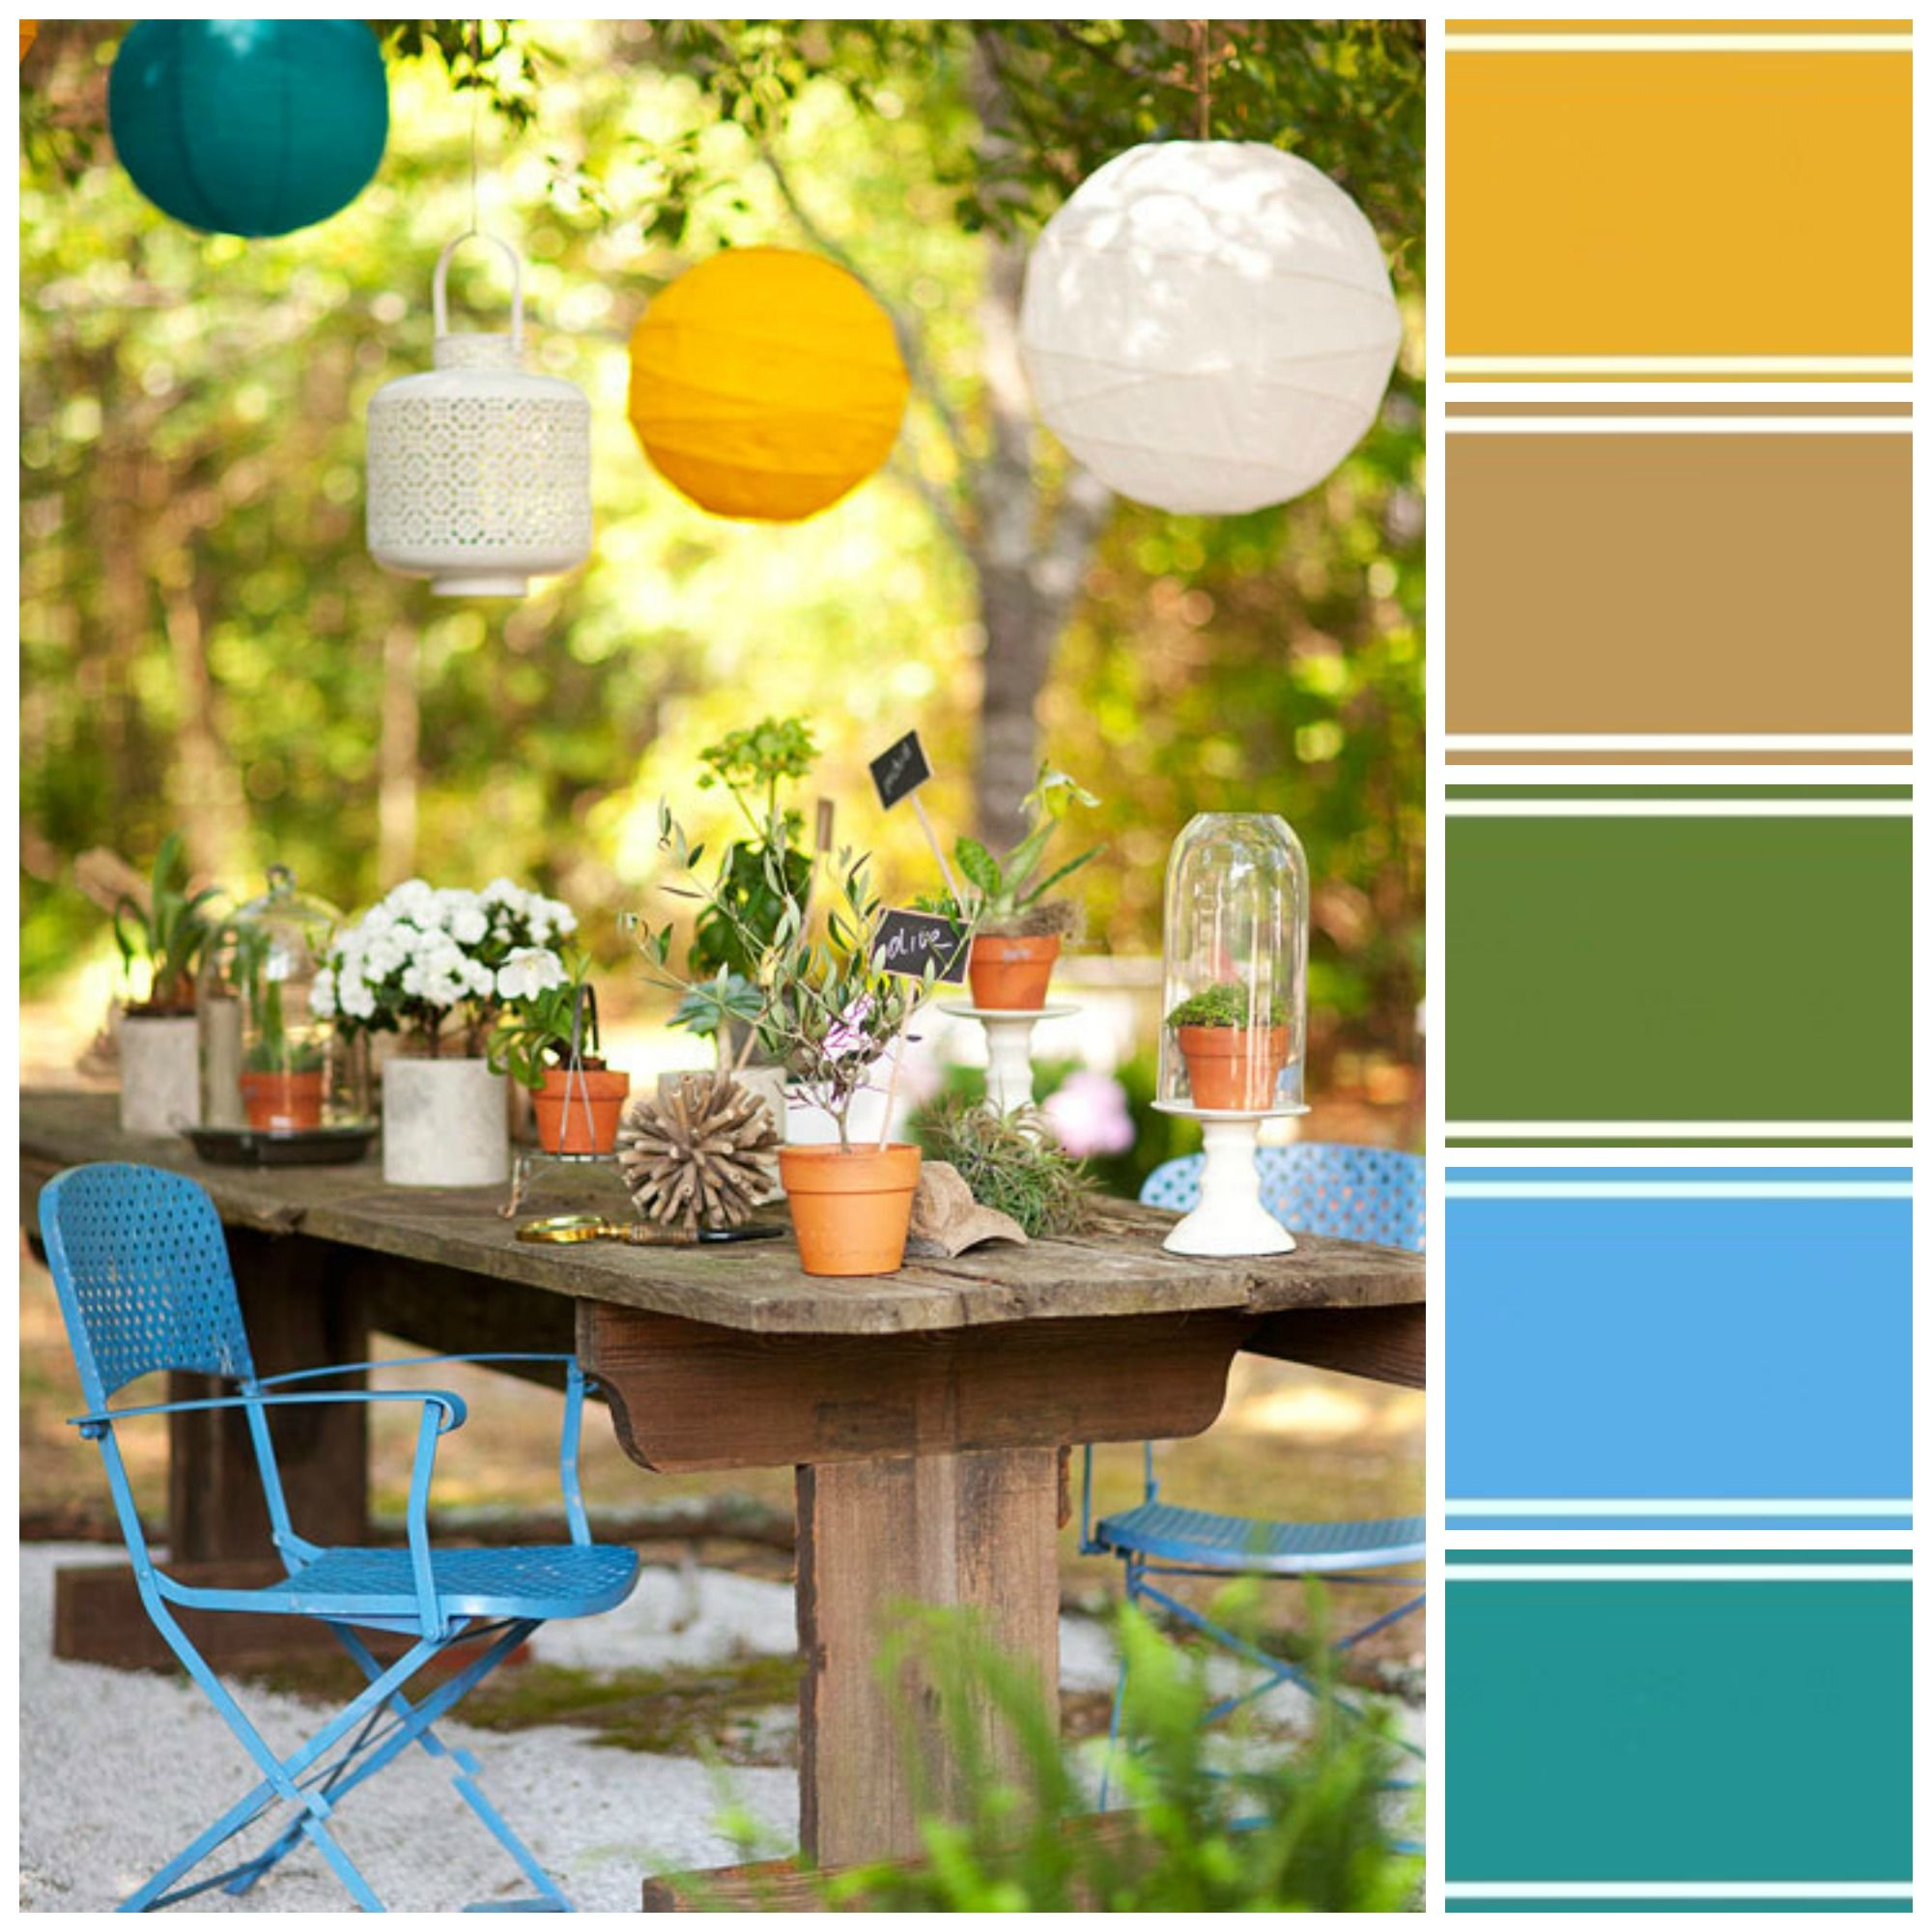 Pinterest garden decor ideas photograph outdoor decorating for Decoration ideas